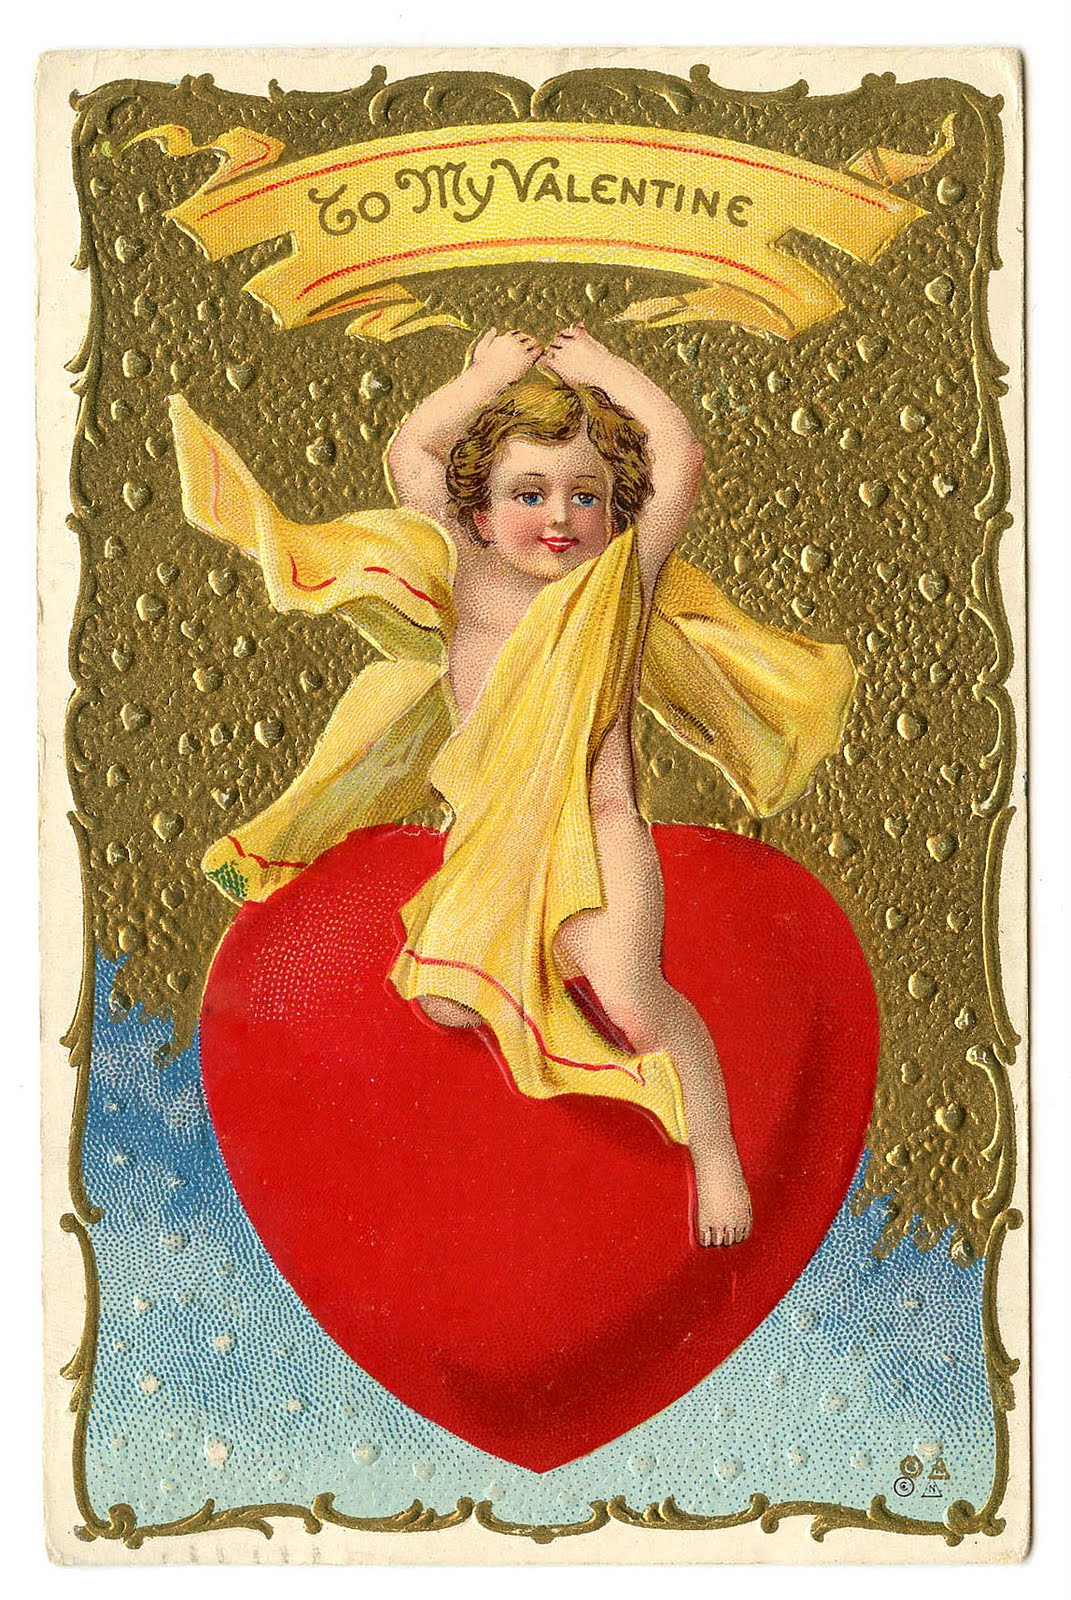 Vintage Valentine Clip Art - Cherub Riding Giant Heart ...